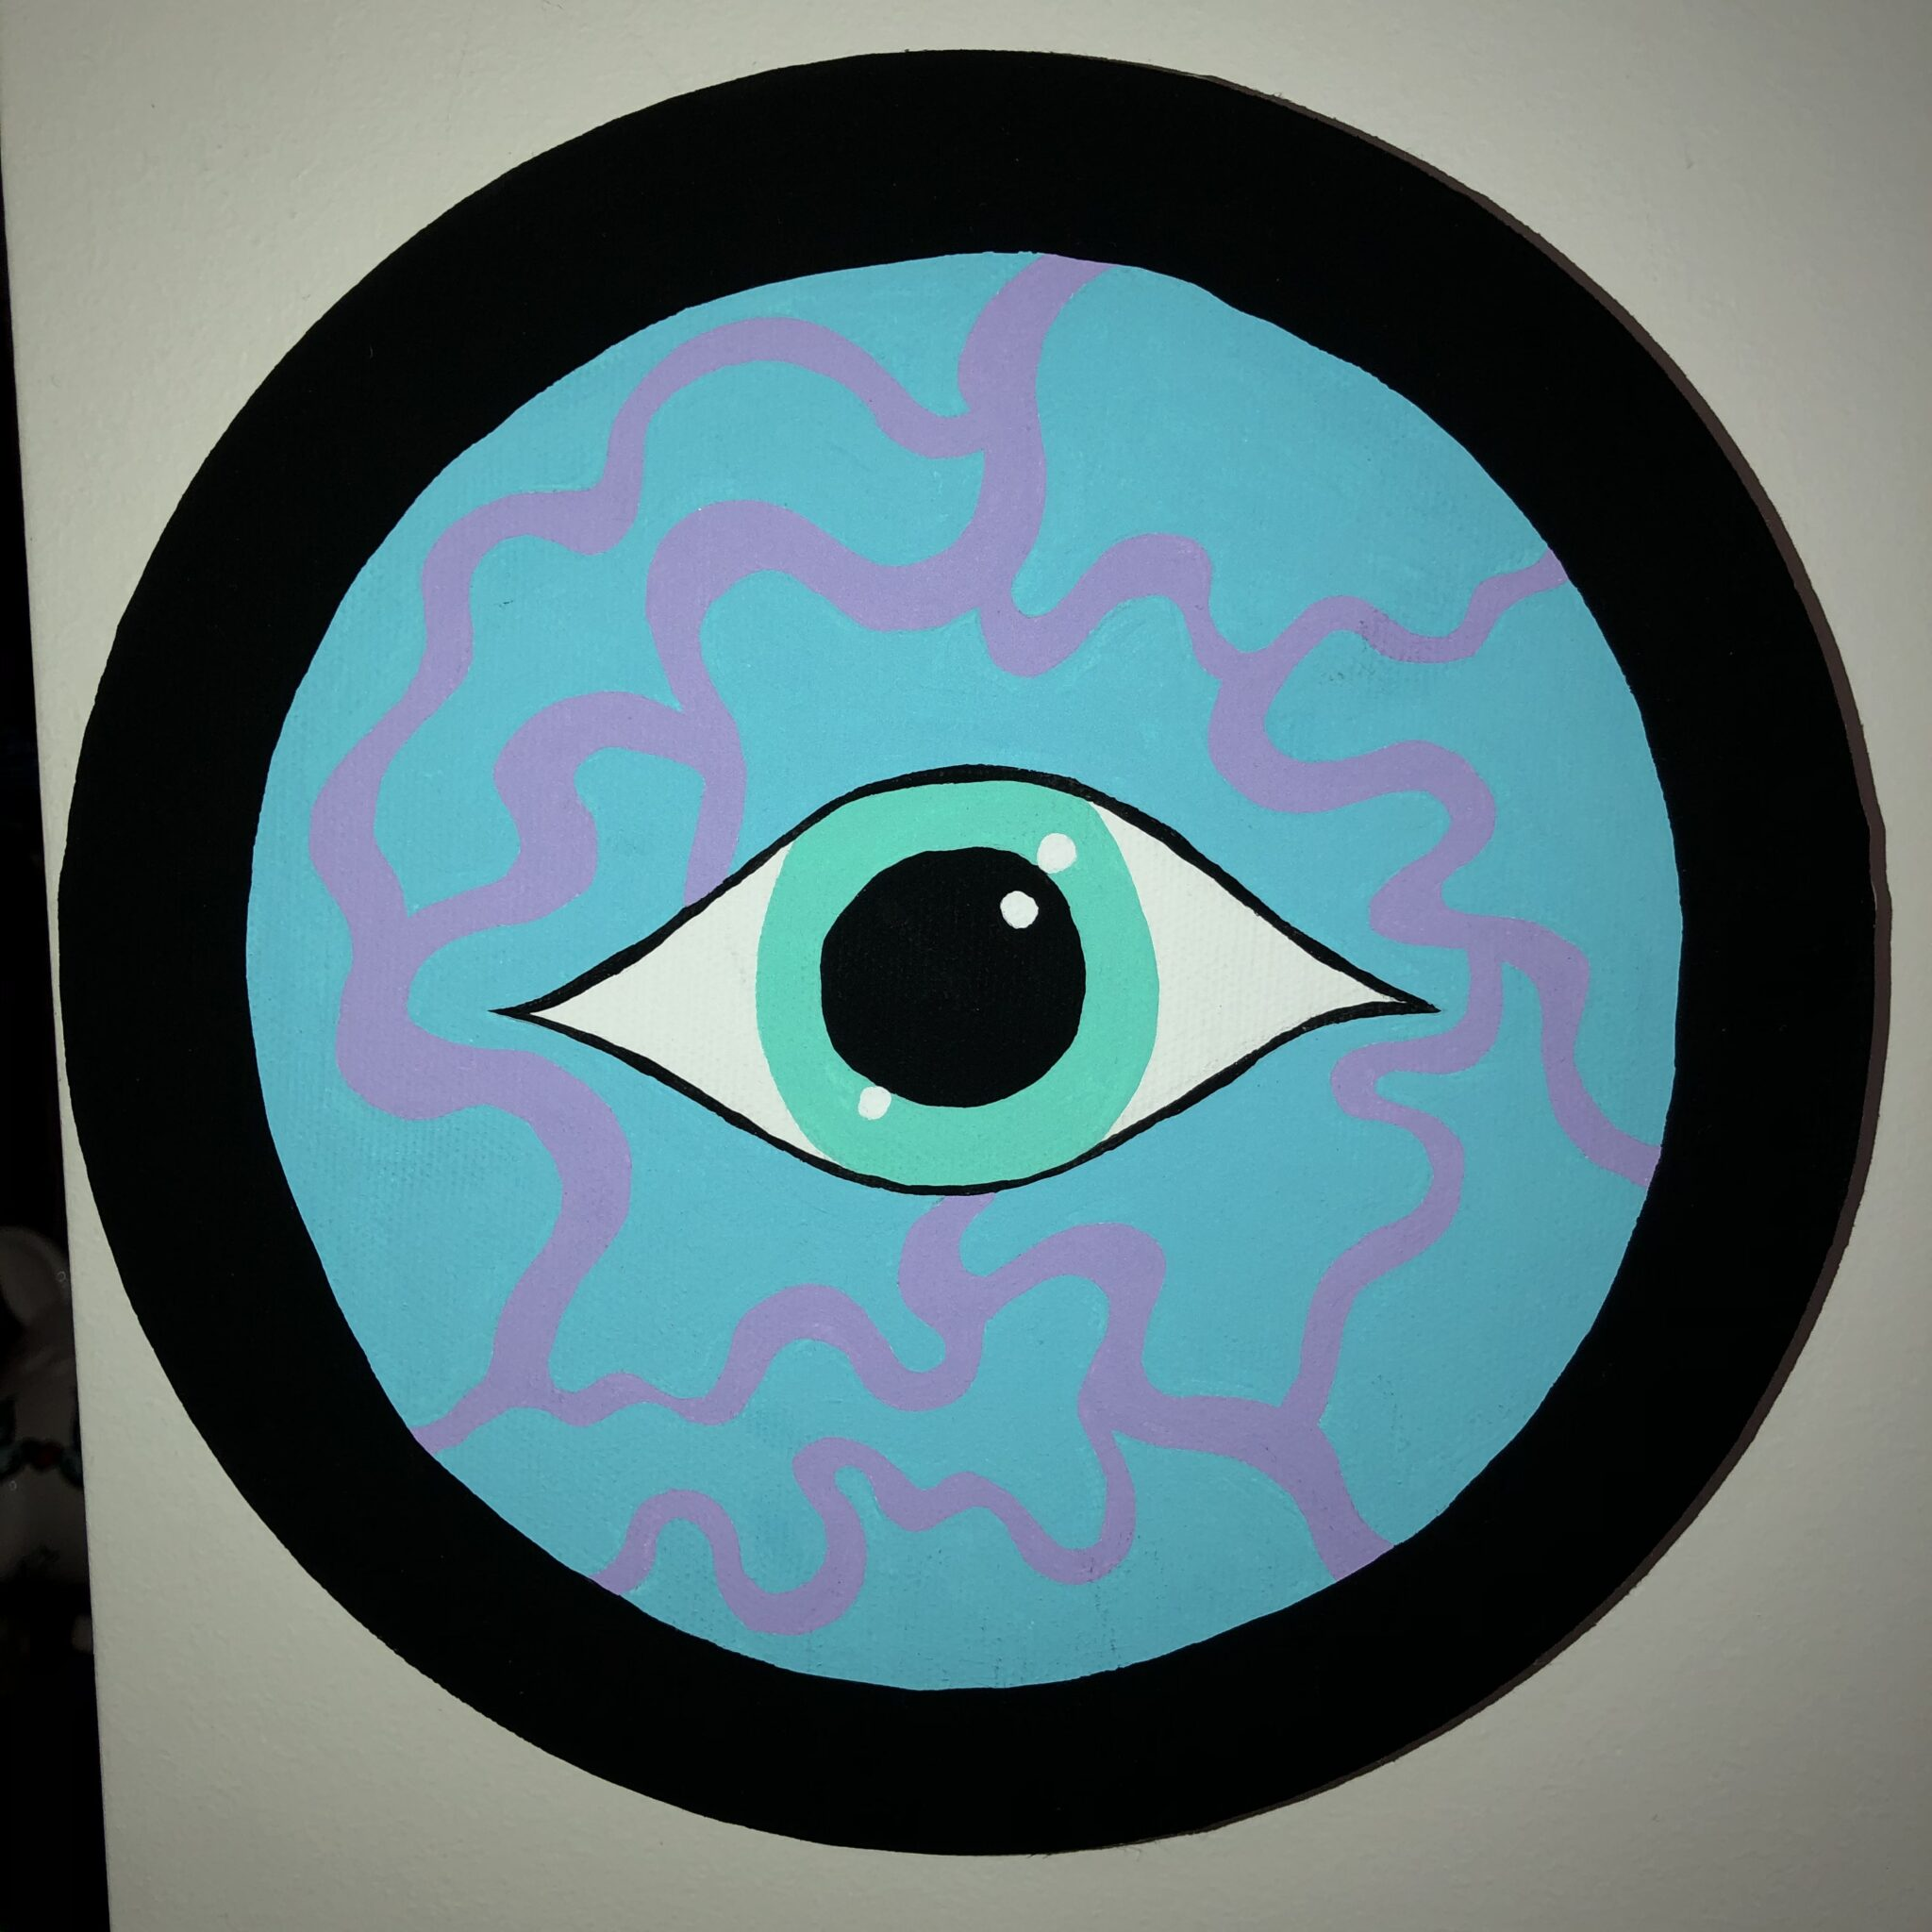 Eye See A New World By Mickayla Cristiano (Almost Solo Exhibition)